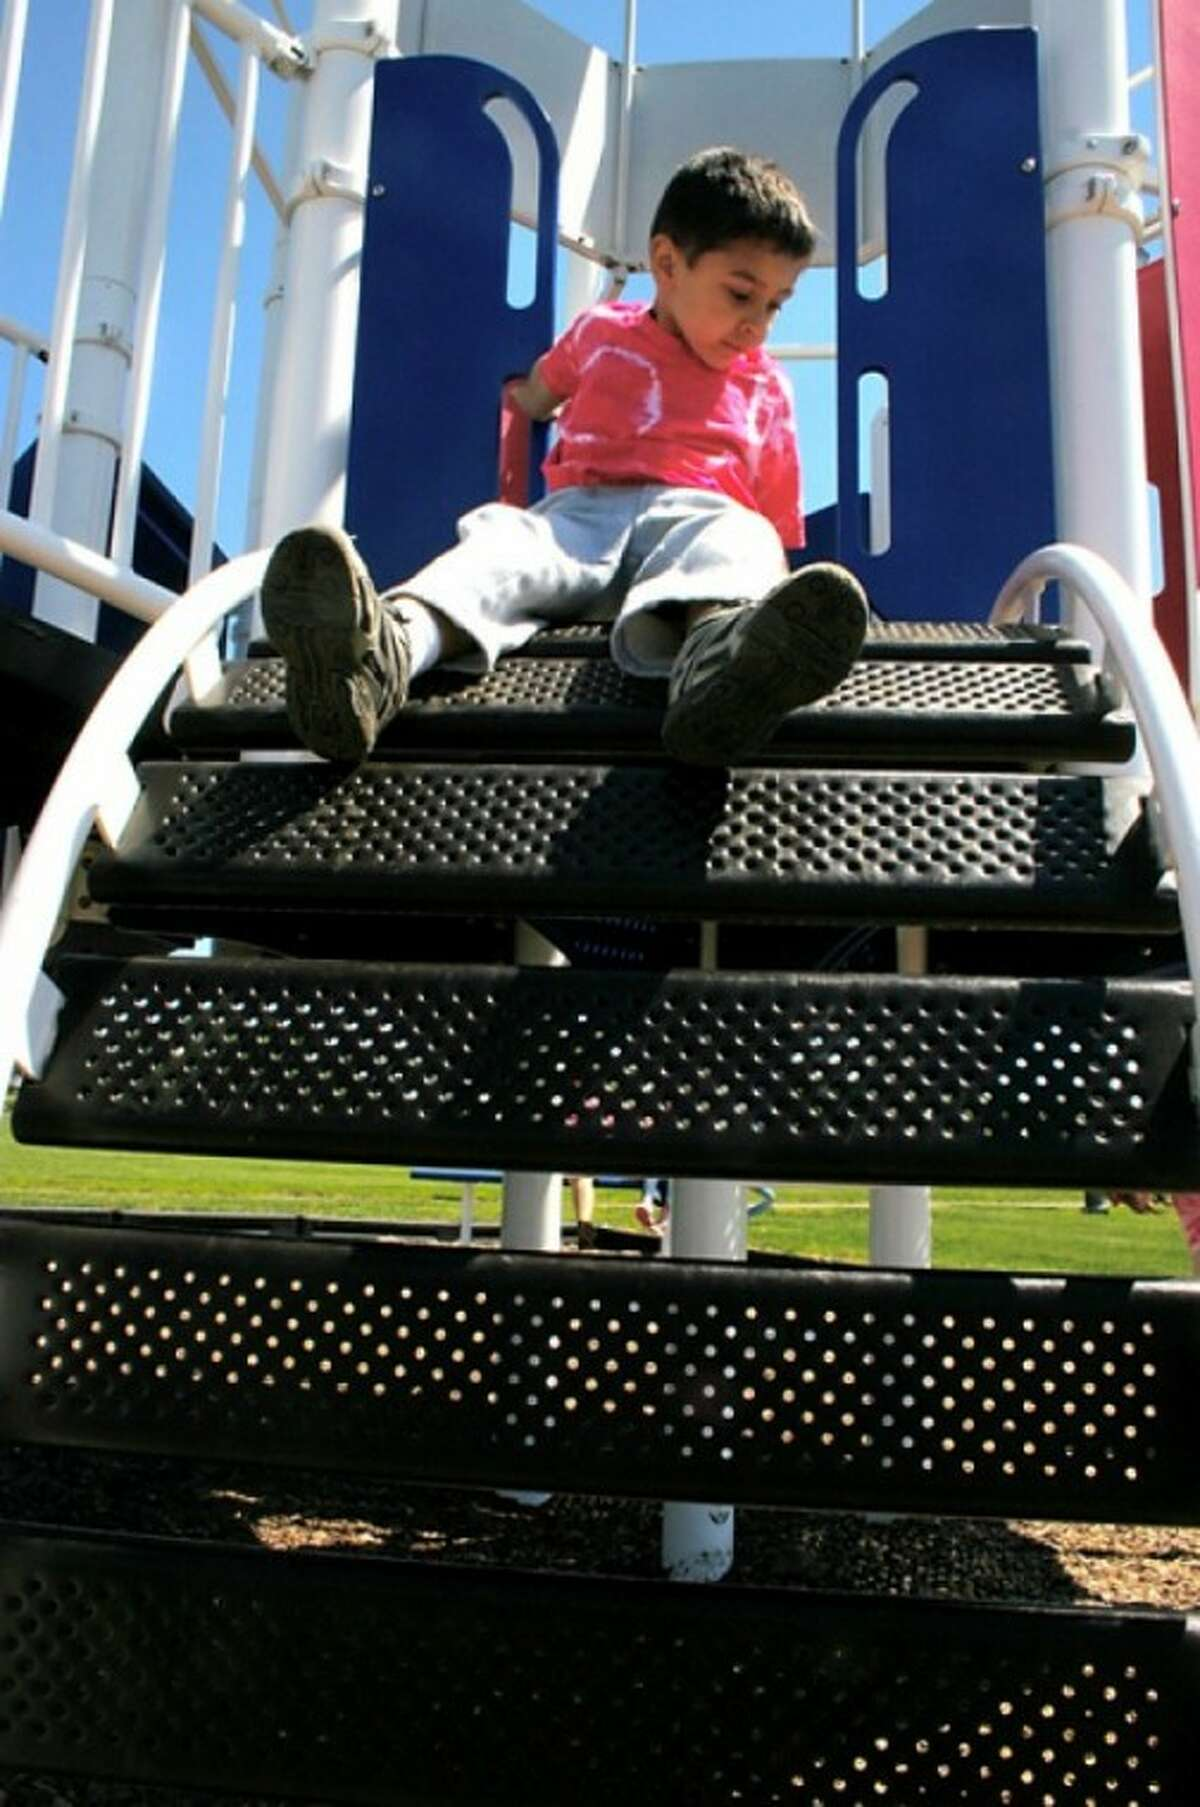 Cristen Curtas of Side by Side Charter school enjoys time on the play ground during a feild day in Norwalk Friday morning. Hour Photo / Lucina Sinclair